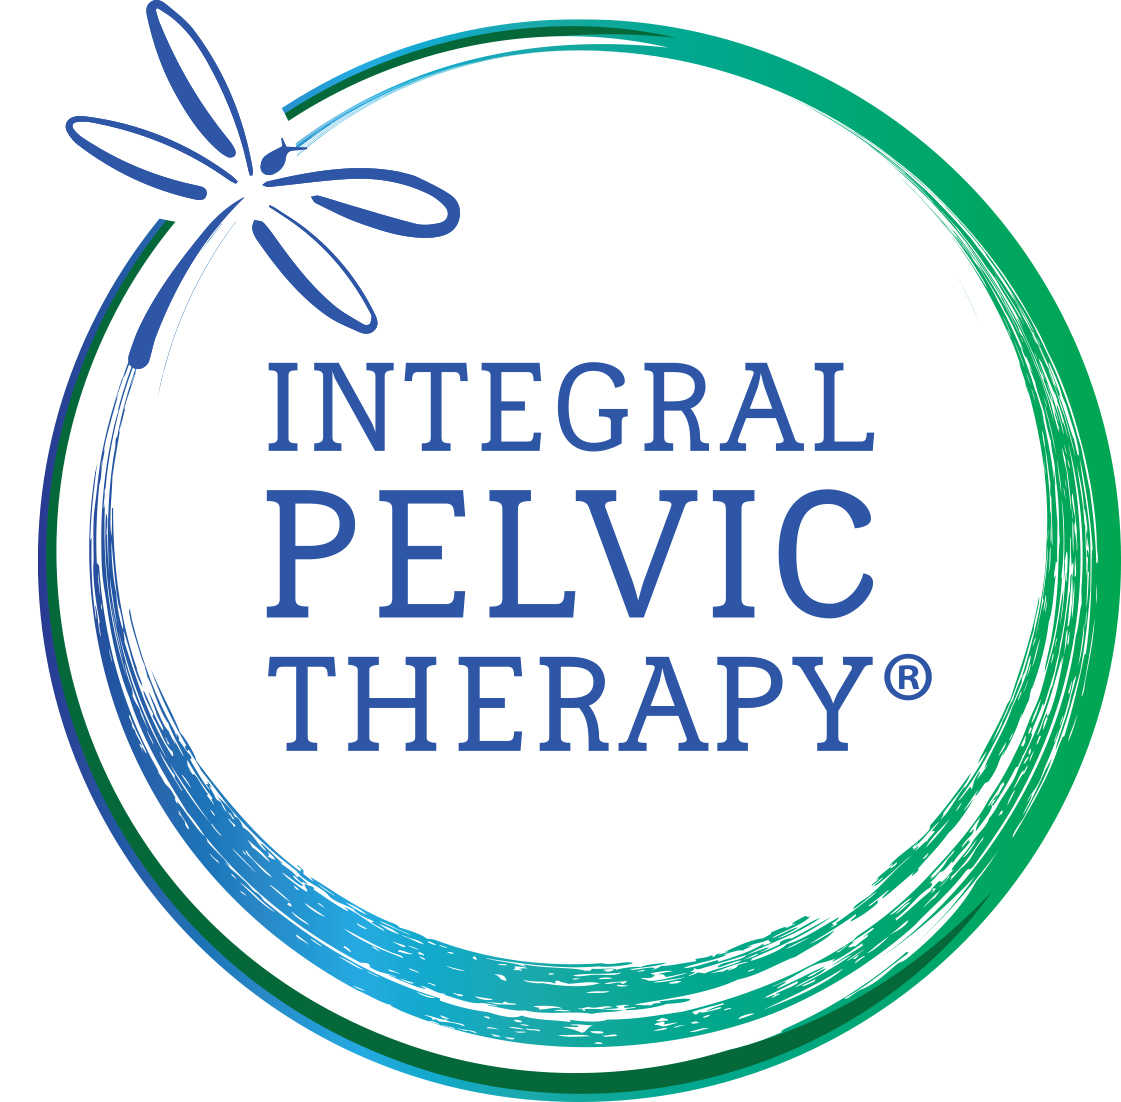 Integral Pelvic Therapy®